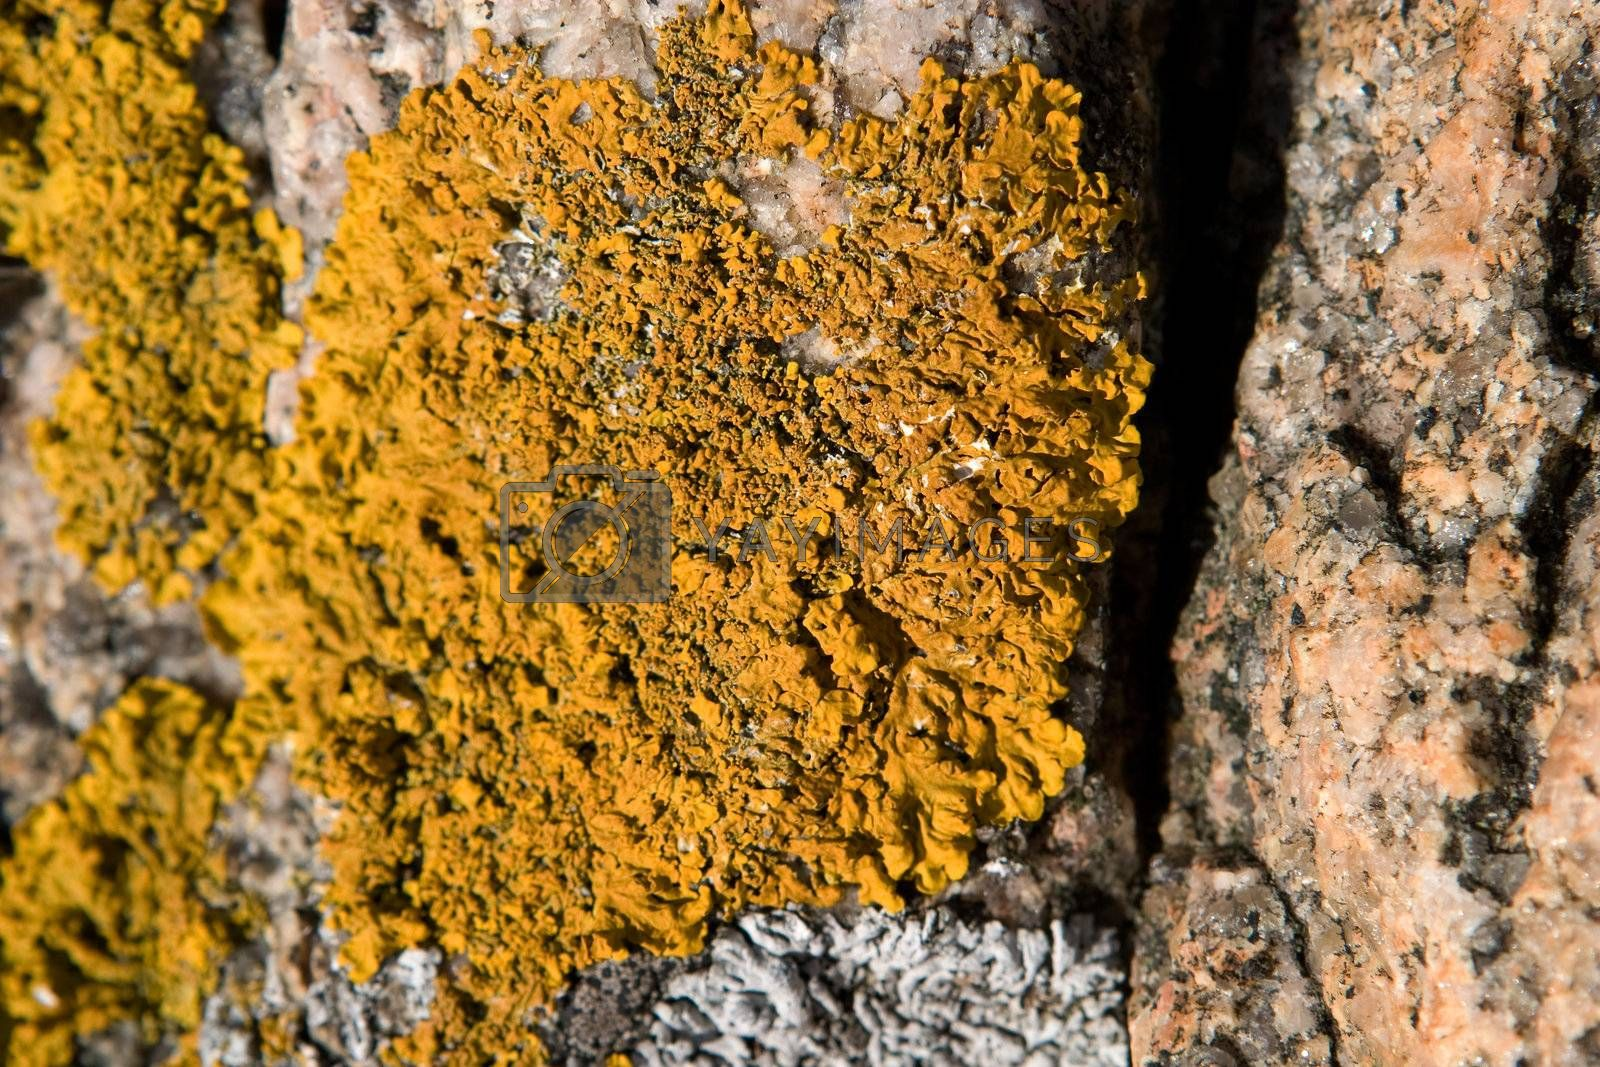 A yellow fungus on a rock